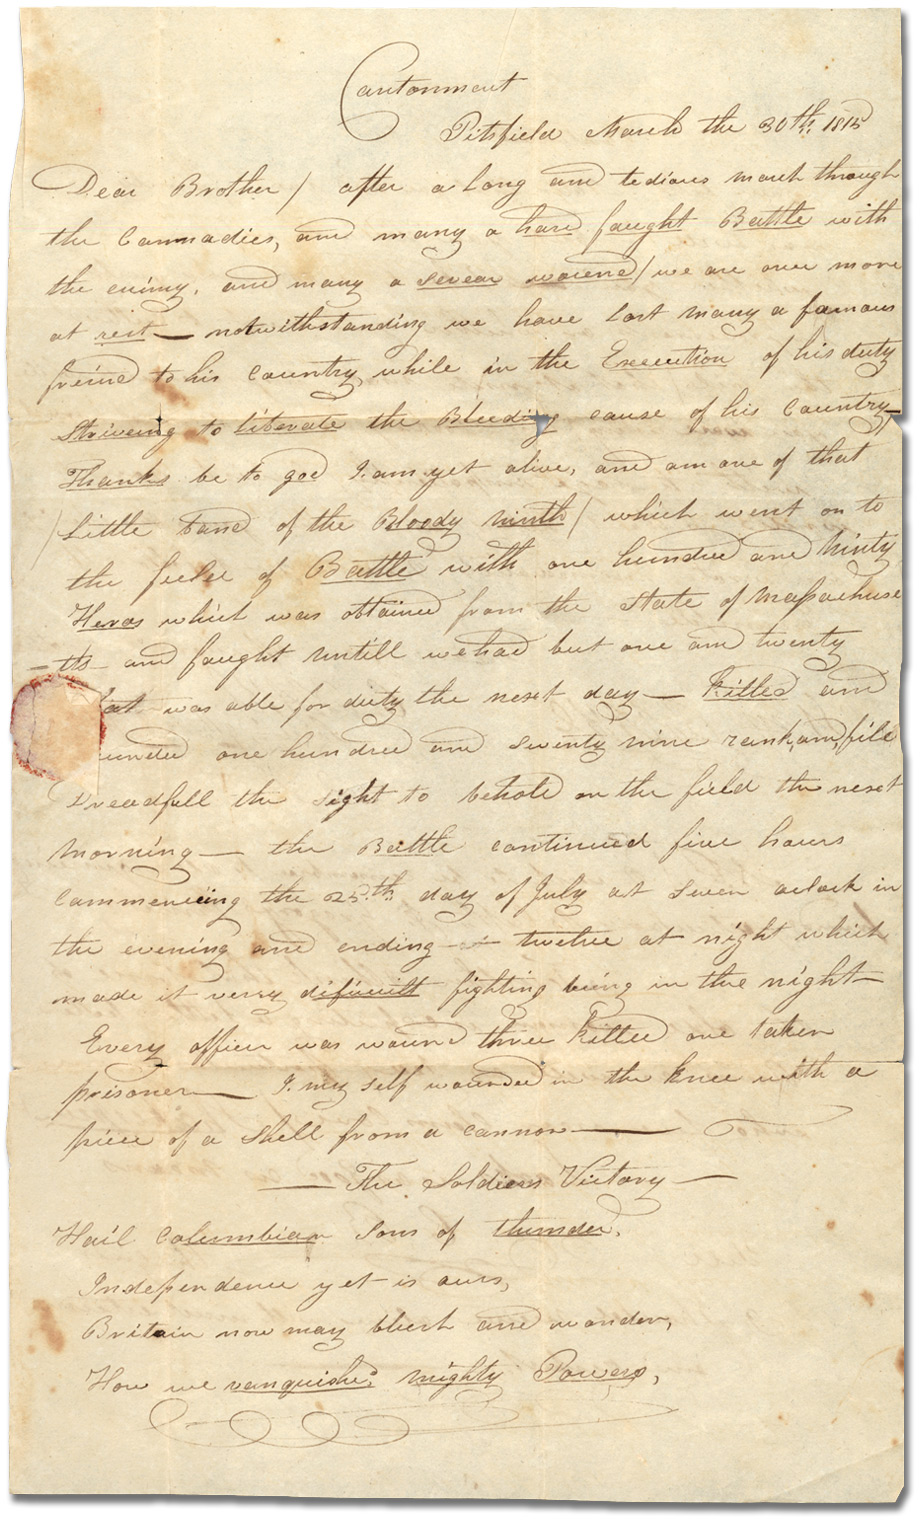 Lettre du Lt. C. Blake, 9th U.S. Infantry à son frère William Blake, 30 mars 1815, [page 1]